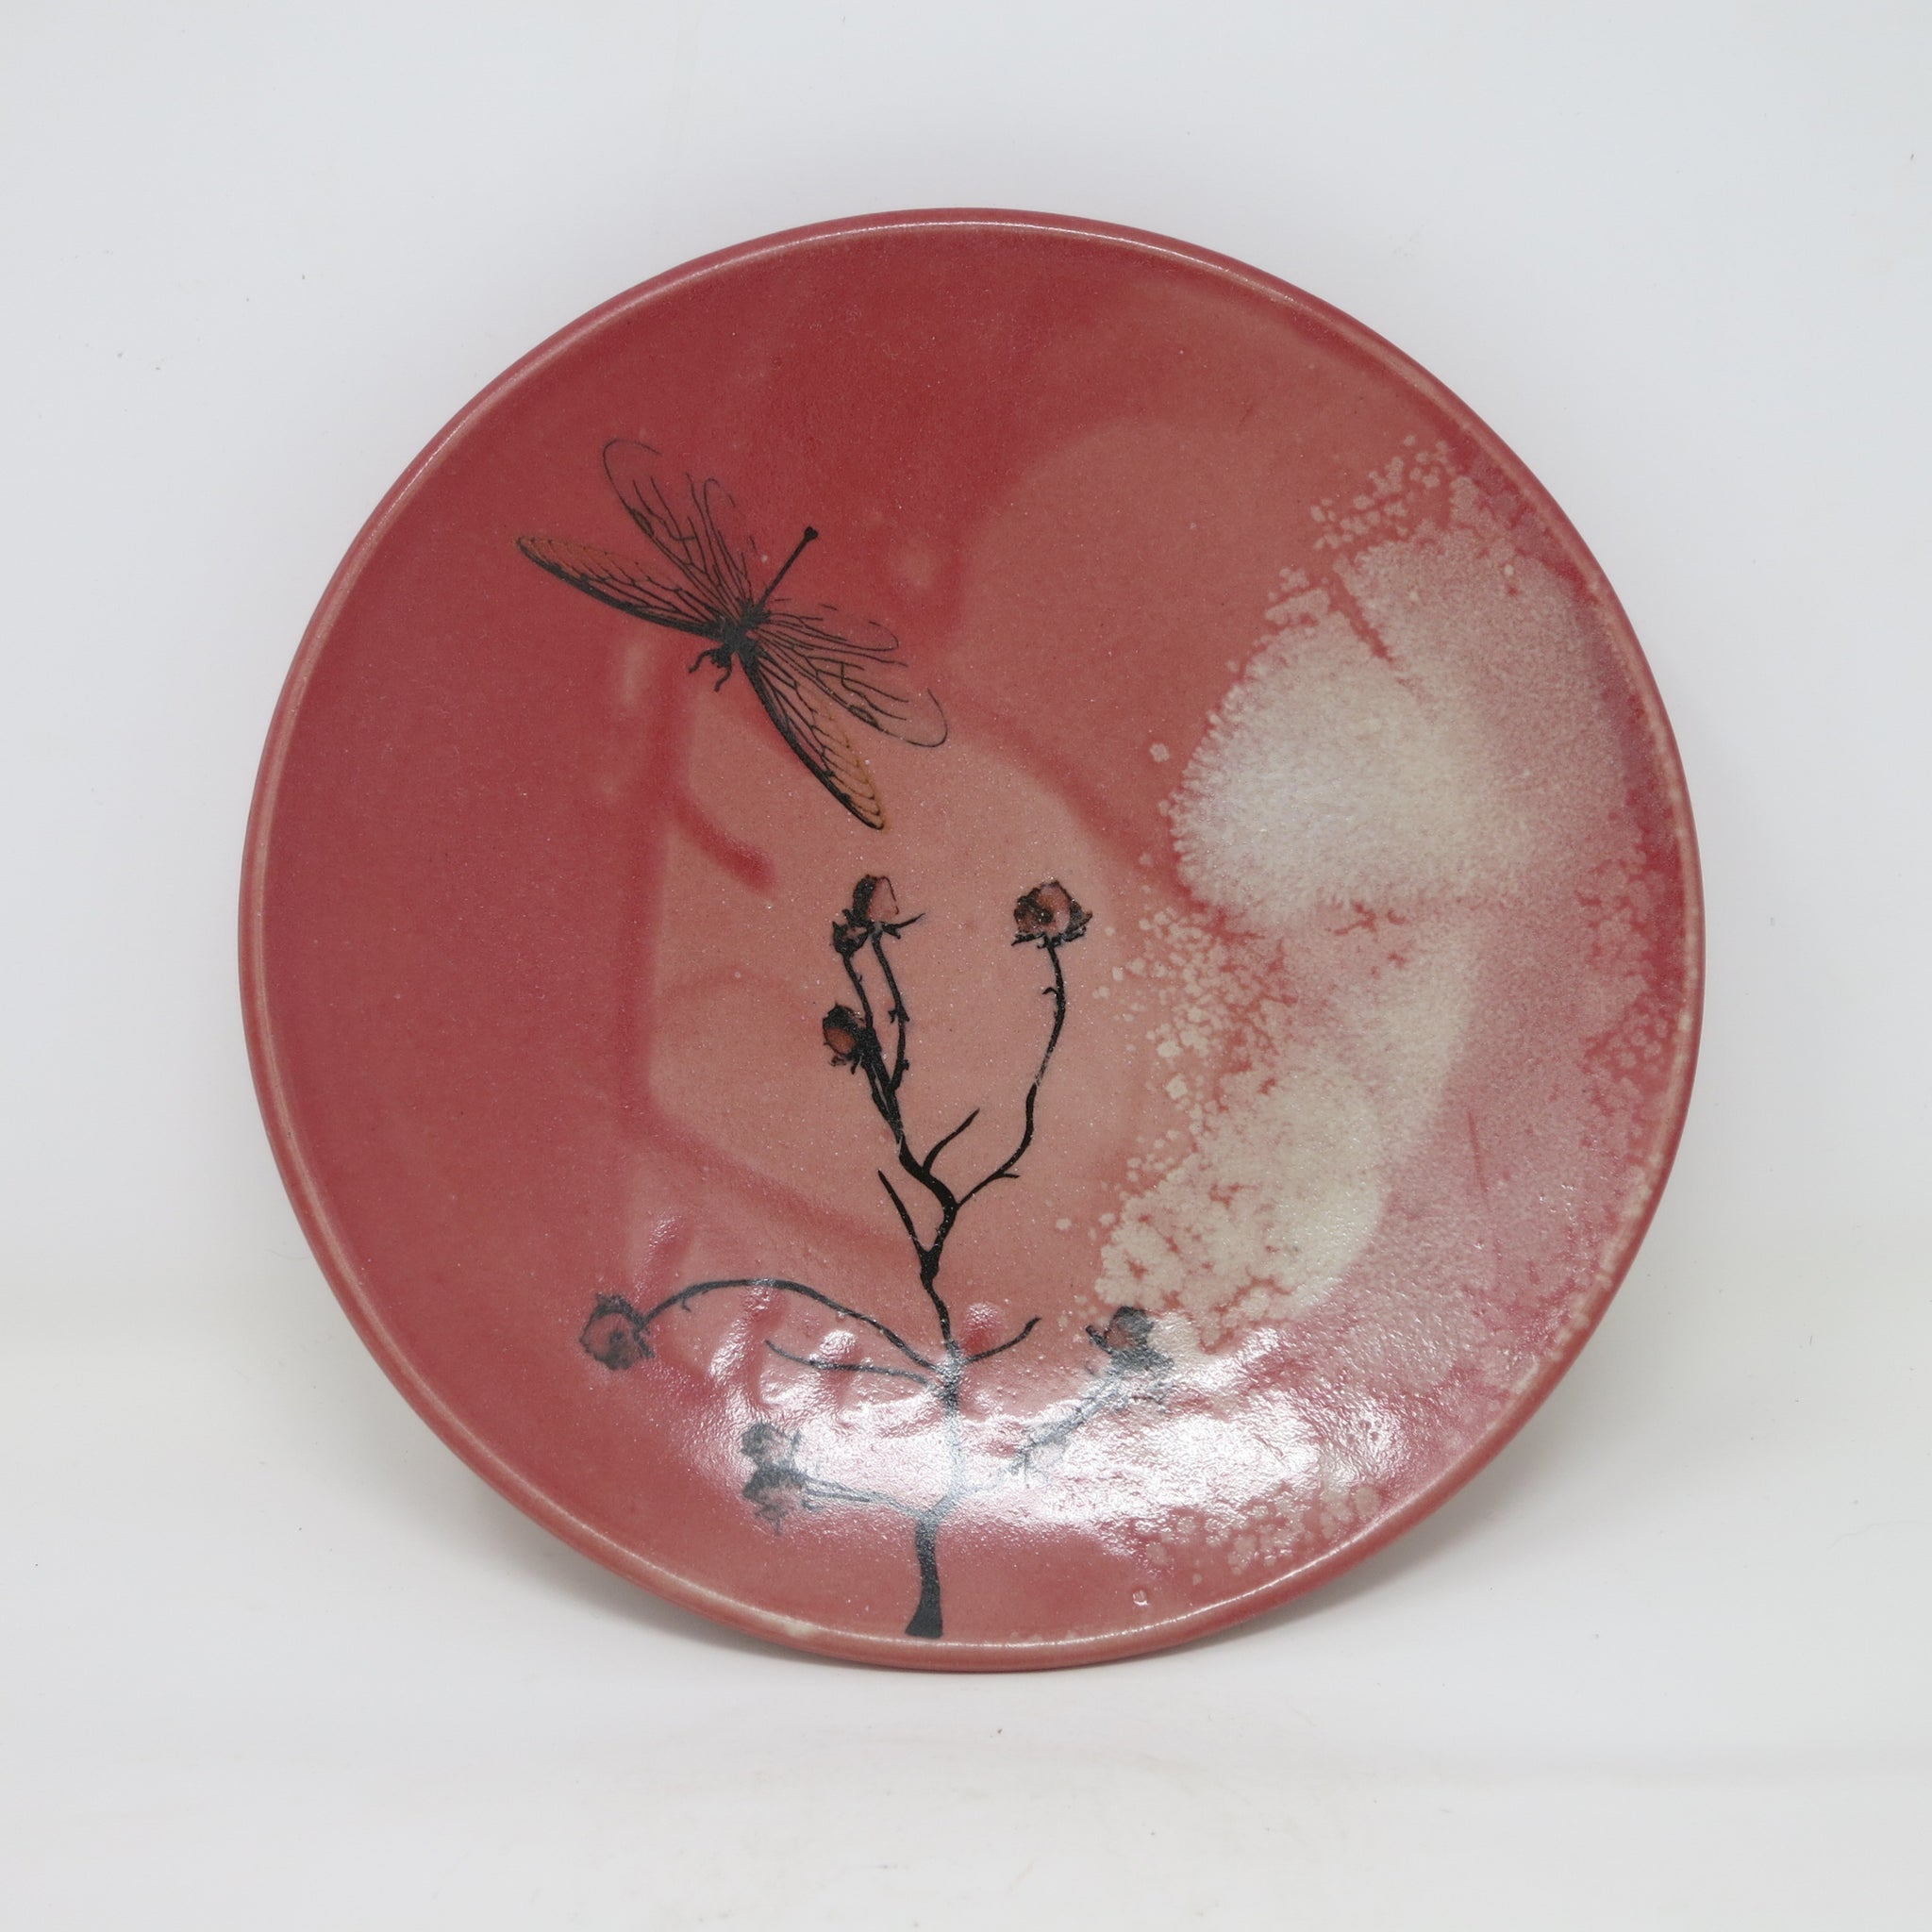 Red Rose Plate (with dragonflies)